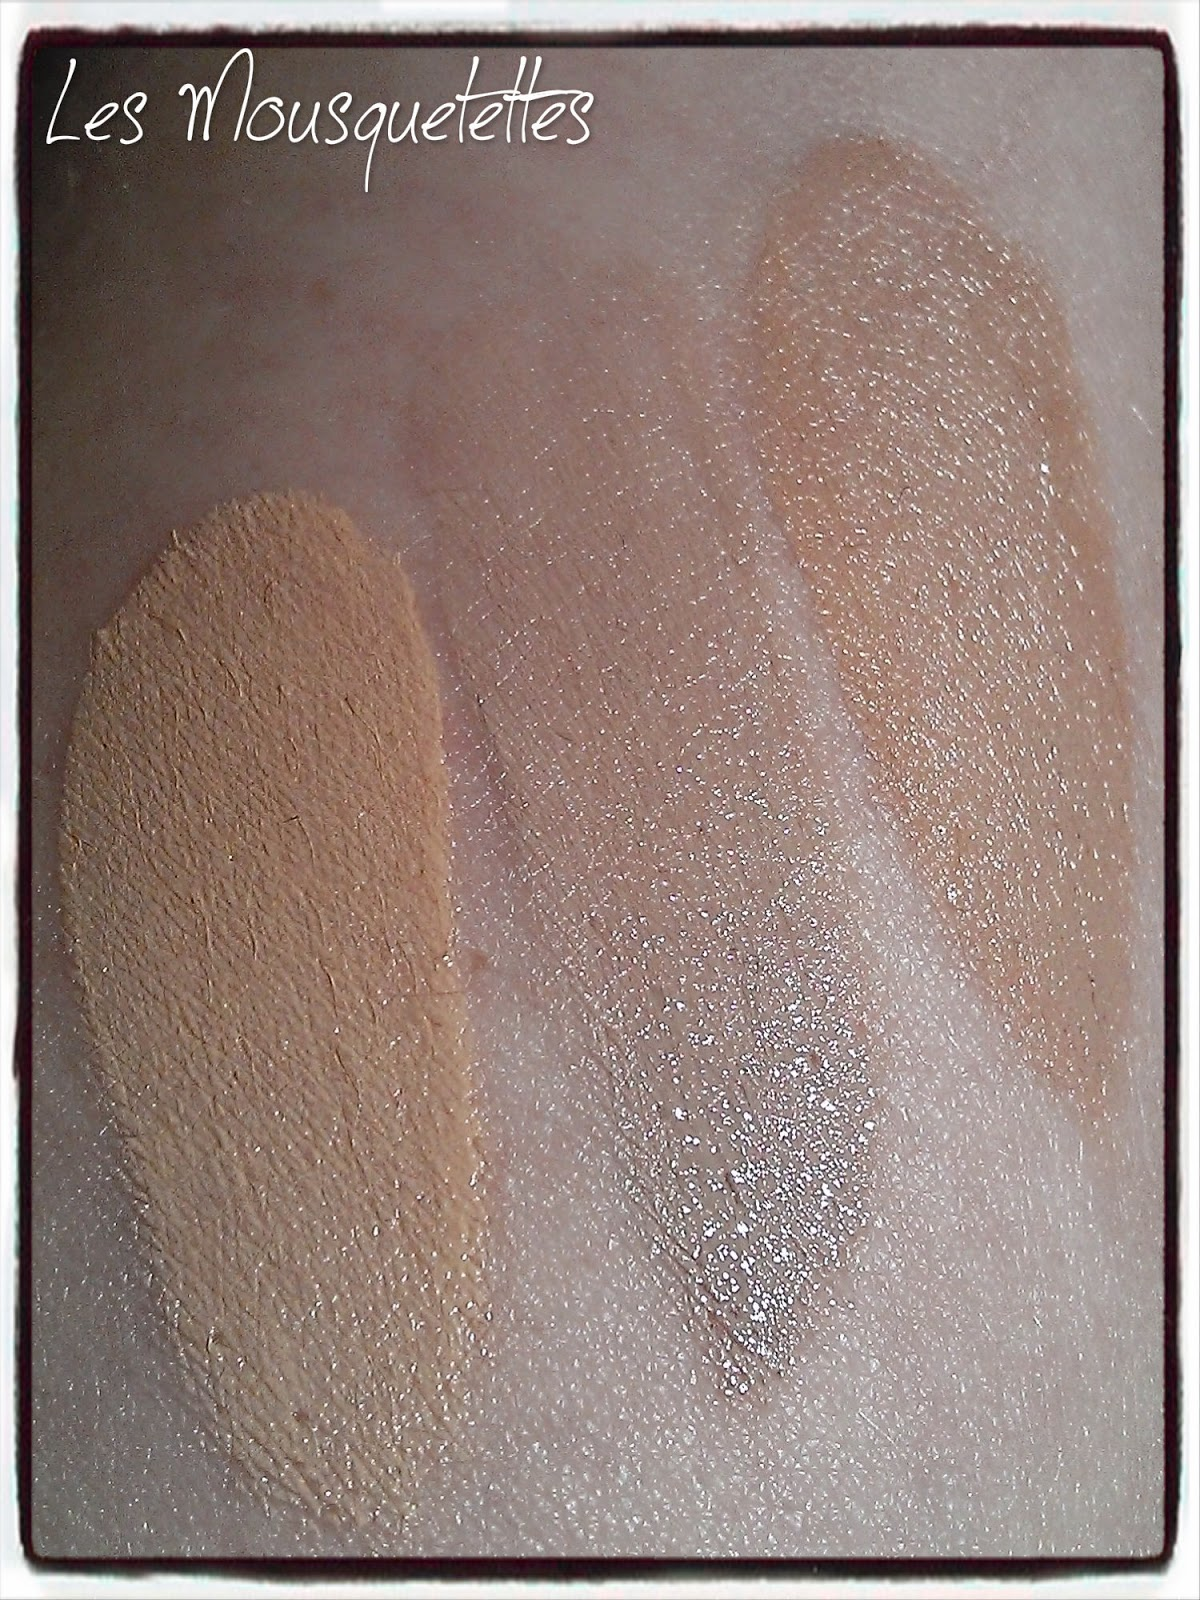 Swatch BB Cream The Original 1967 Dr. Schrammek - Les Mousquetettes©